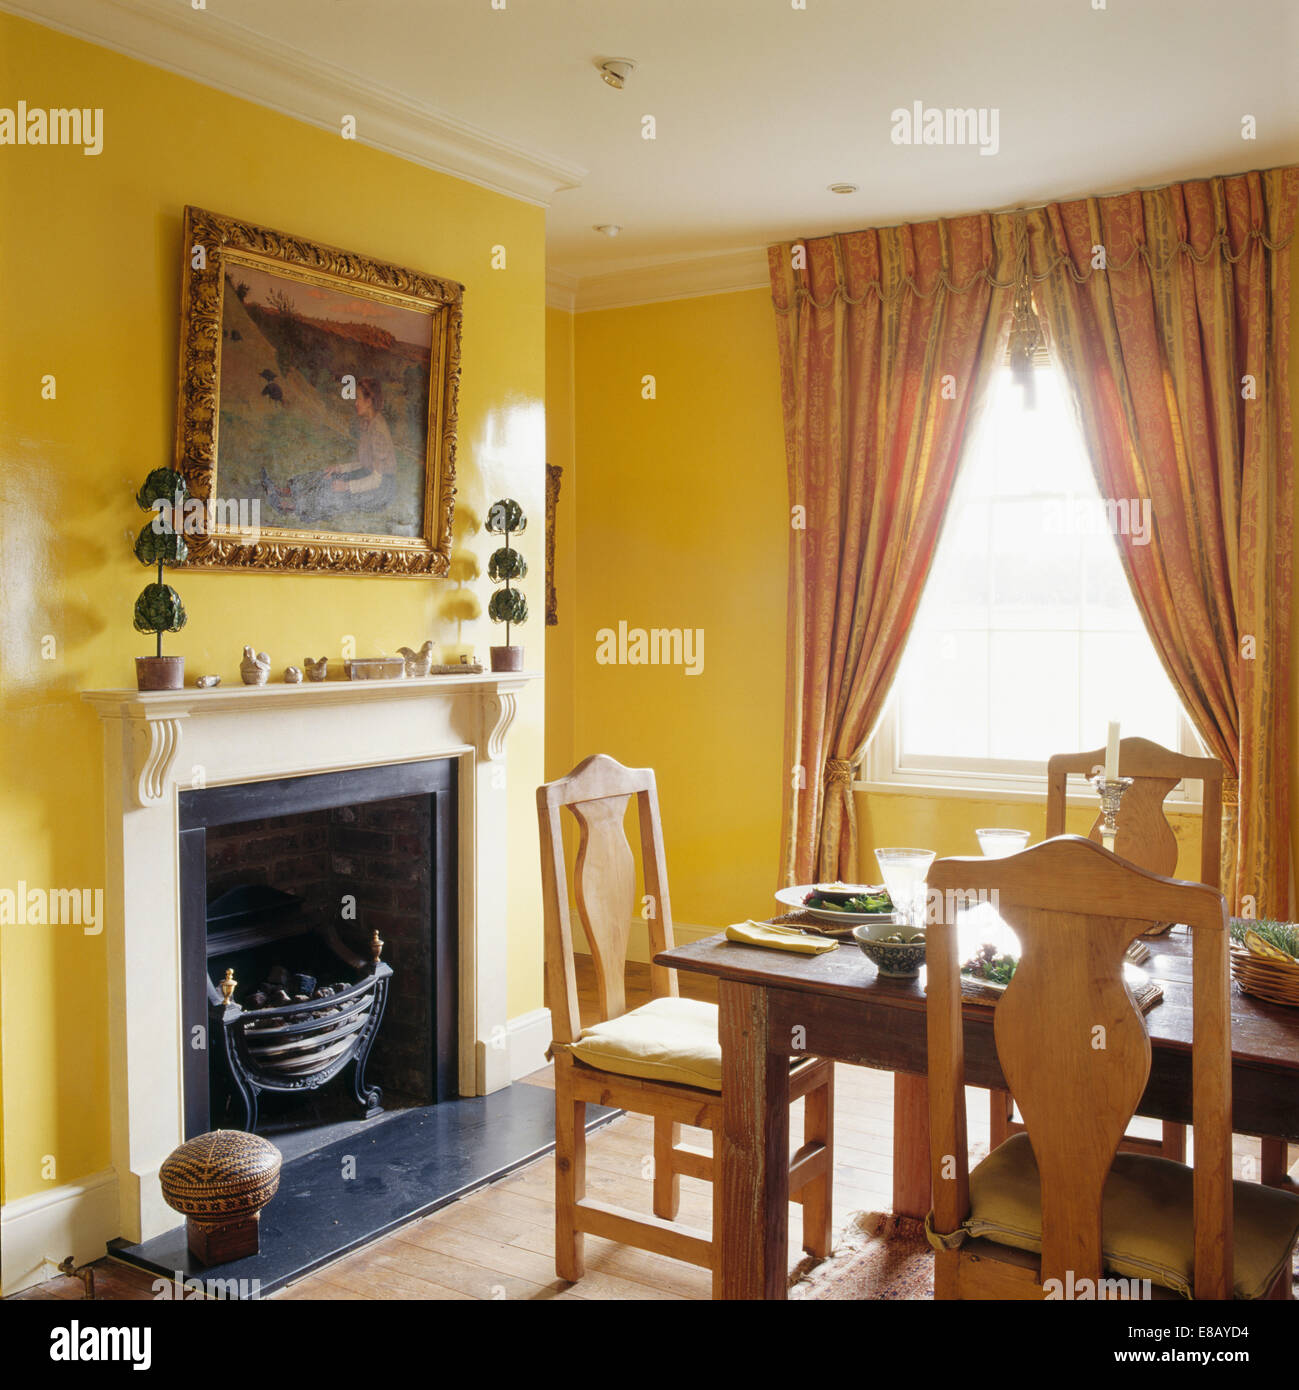 Large Gilt Framed Mirror Above Fireplace In Yellow Dining Room With Full Length Curtains At The Window